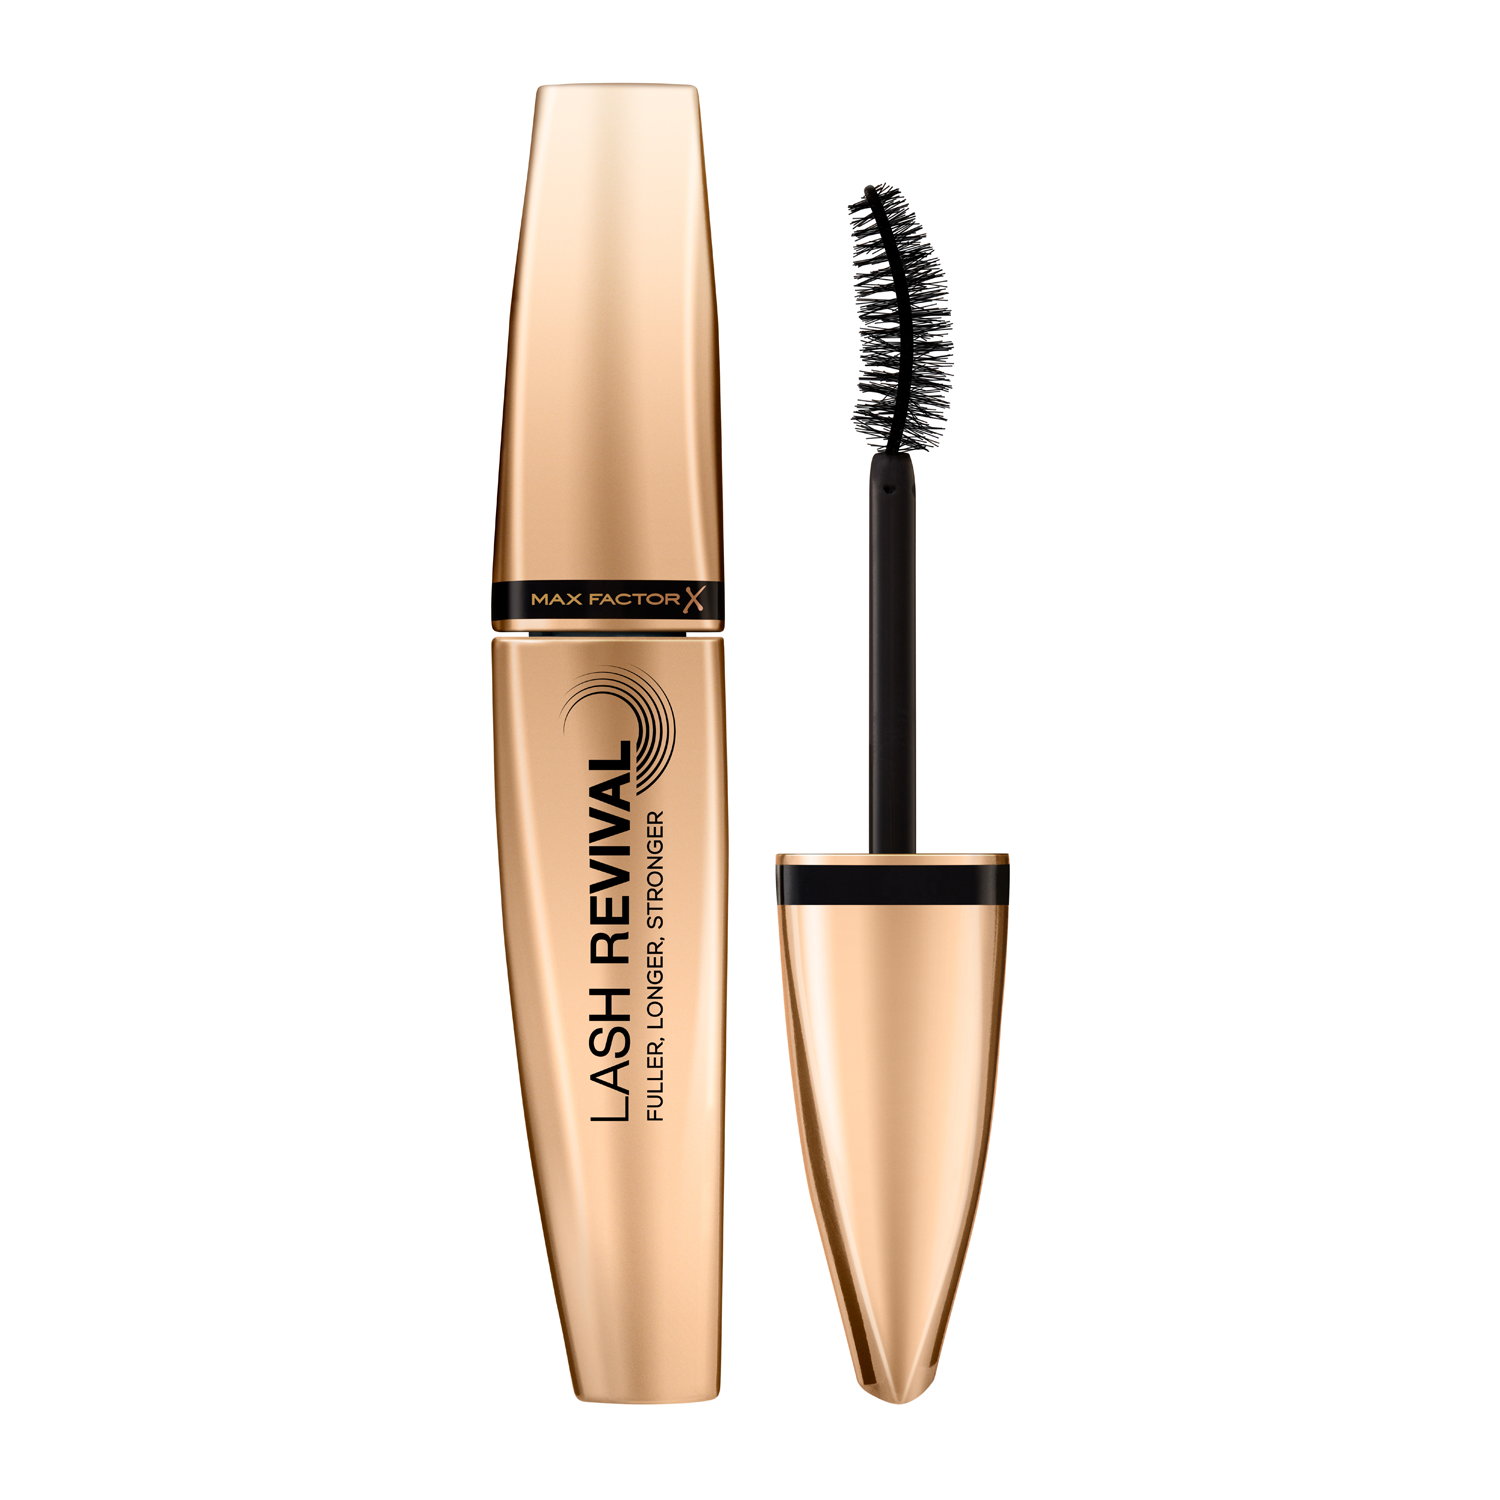 Lash Revival Mascara: Black INT closed